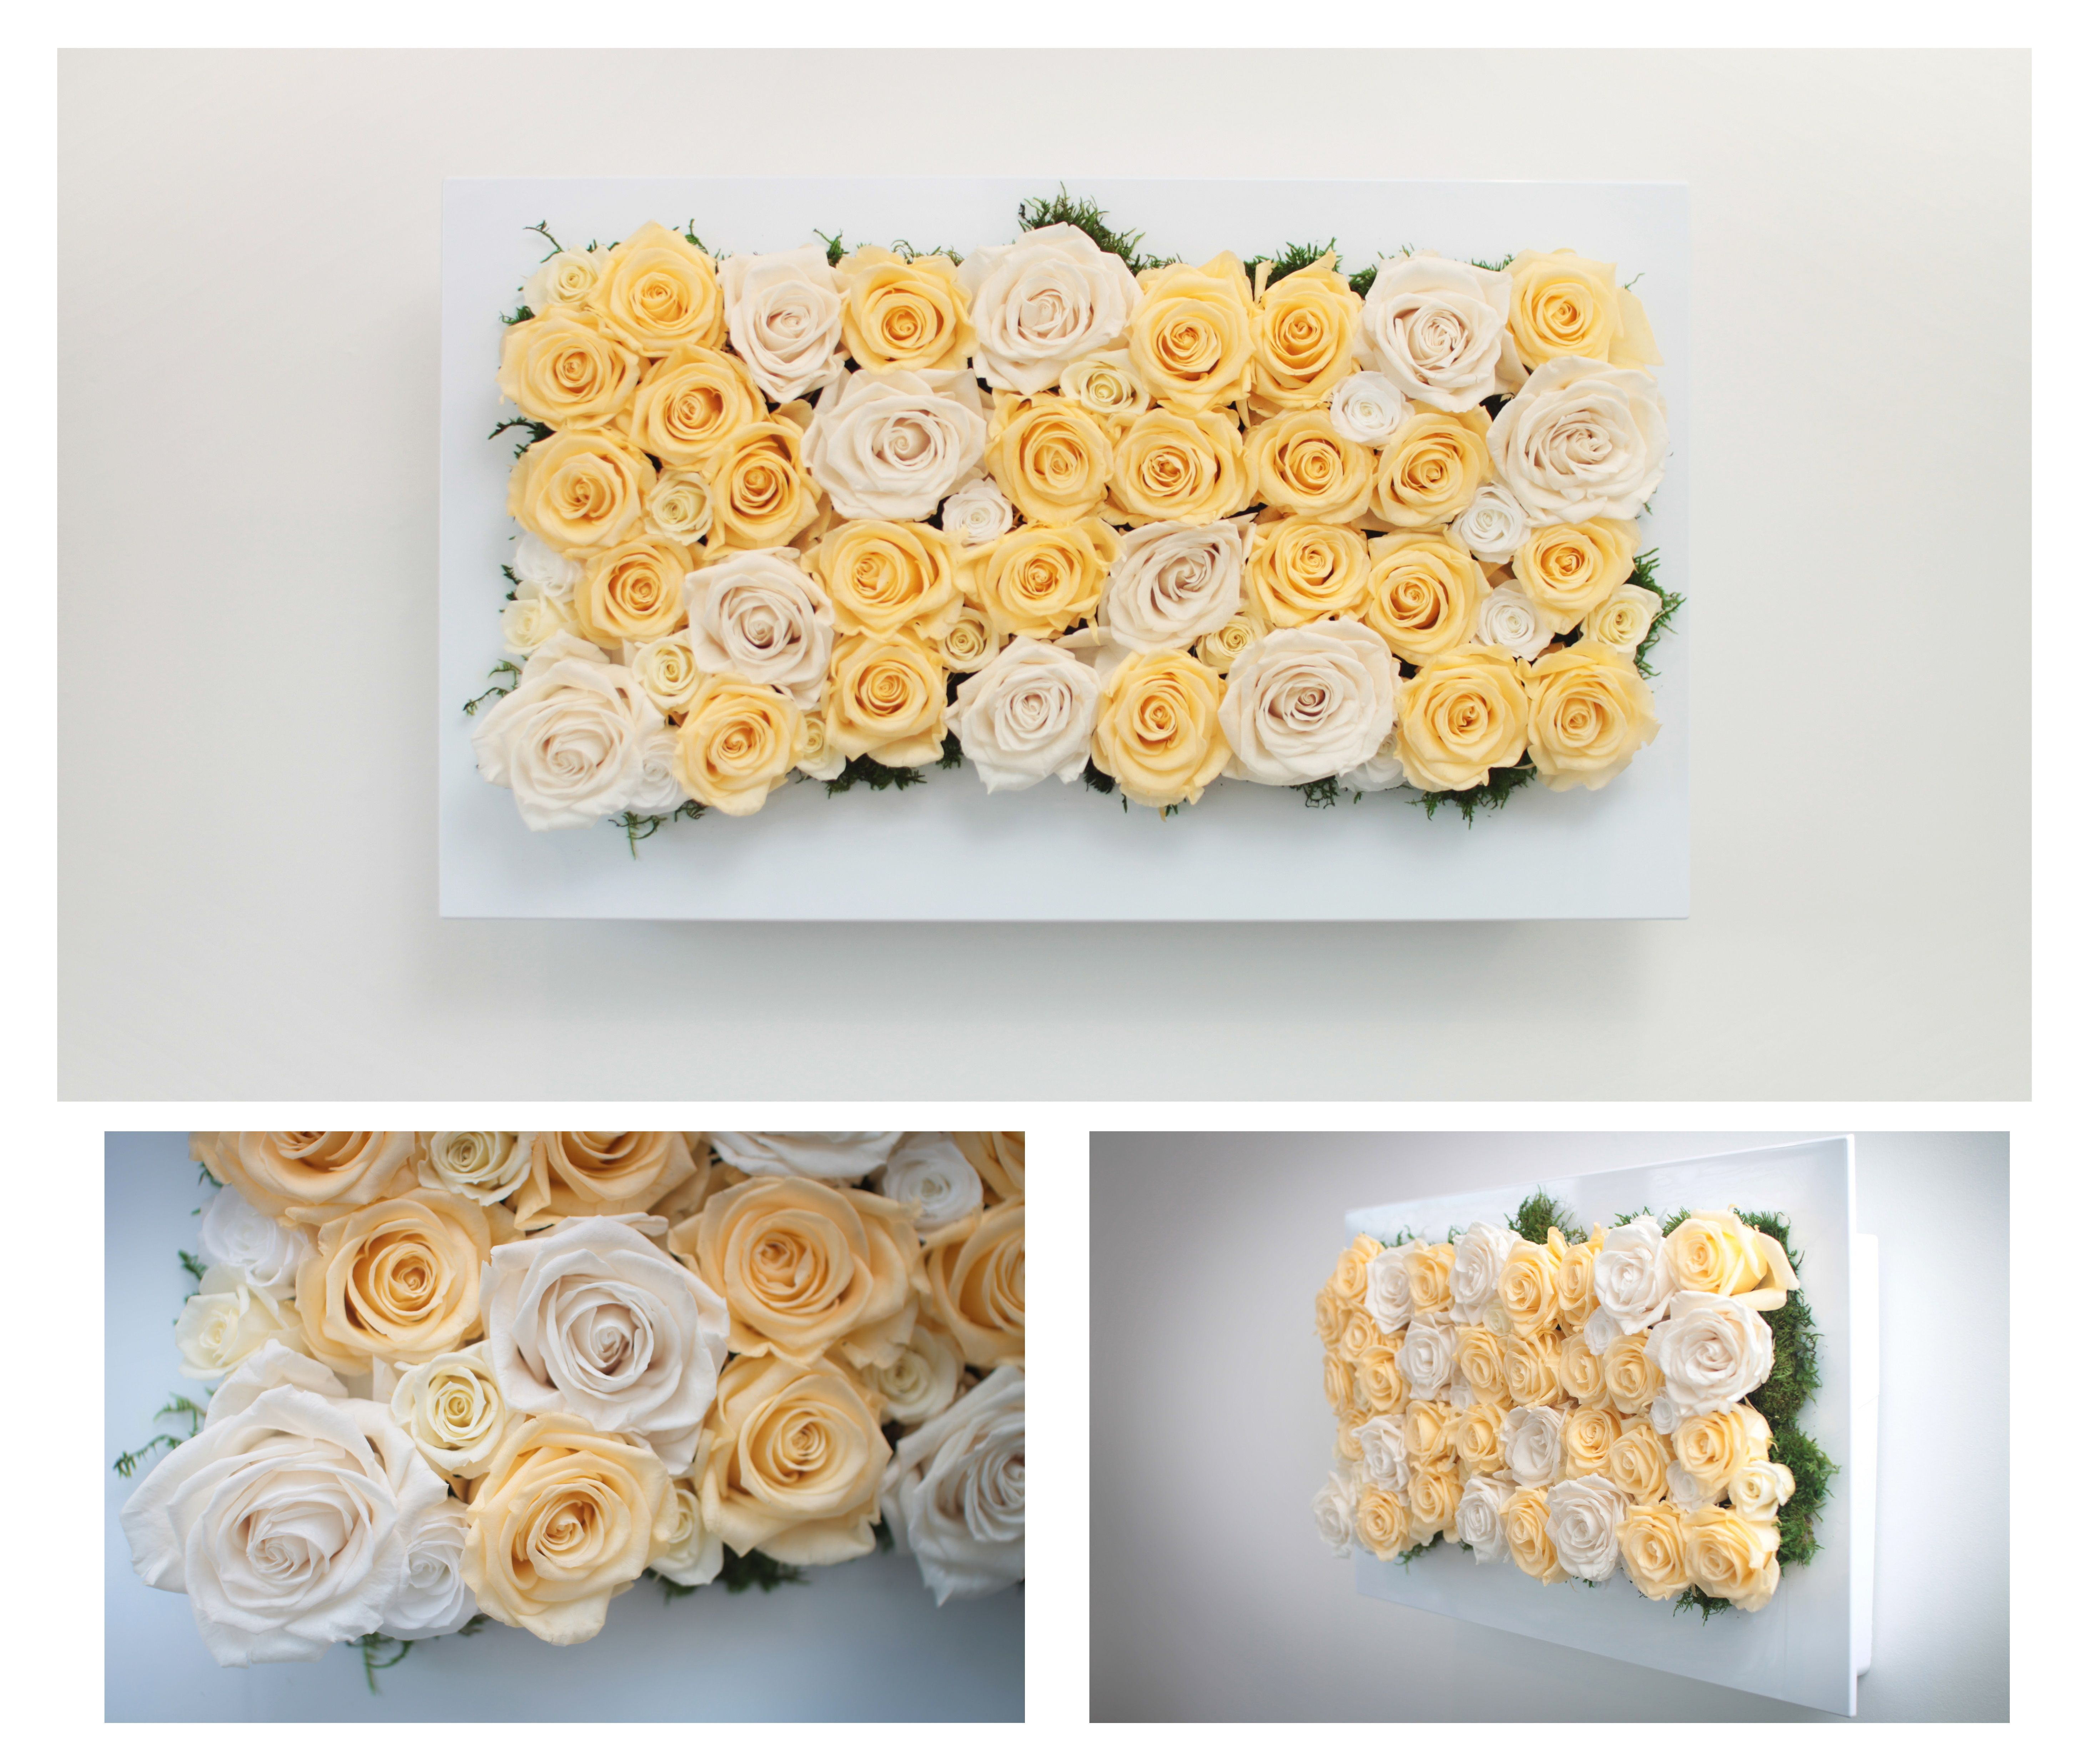 Flower wall using preserved roses - lasts forever! Make your own ...